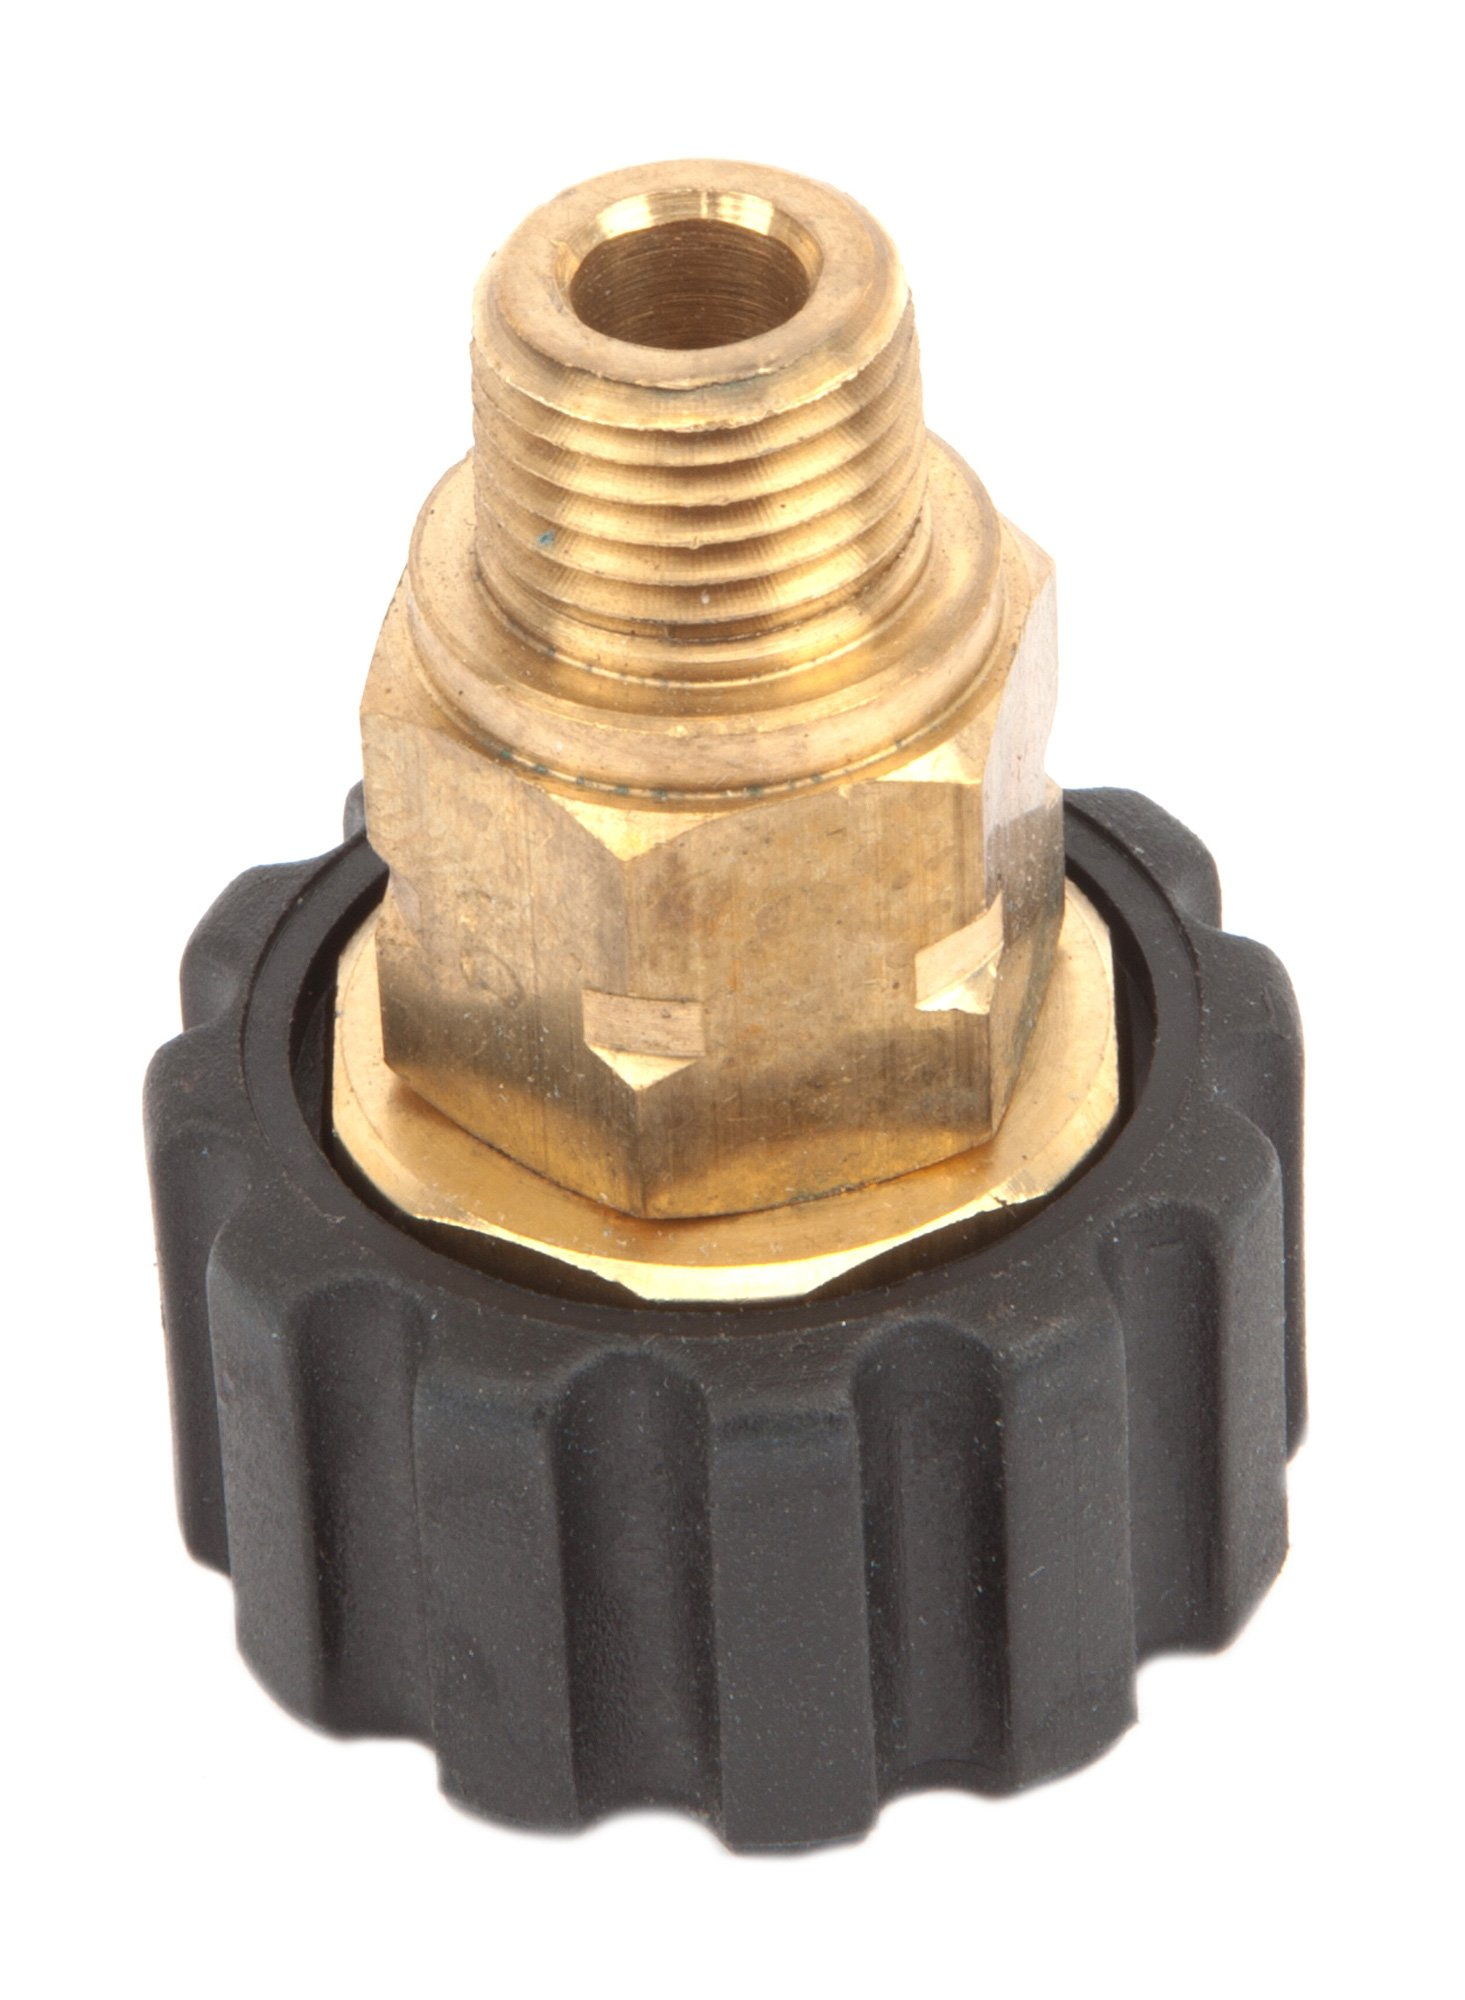 Forney 75107 Pressure Washer Accessories, Male Screw Coupling, M22F to 1/4-Inch Male NPT